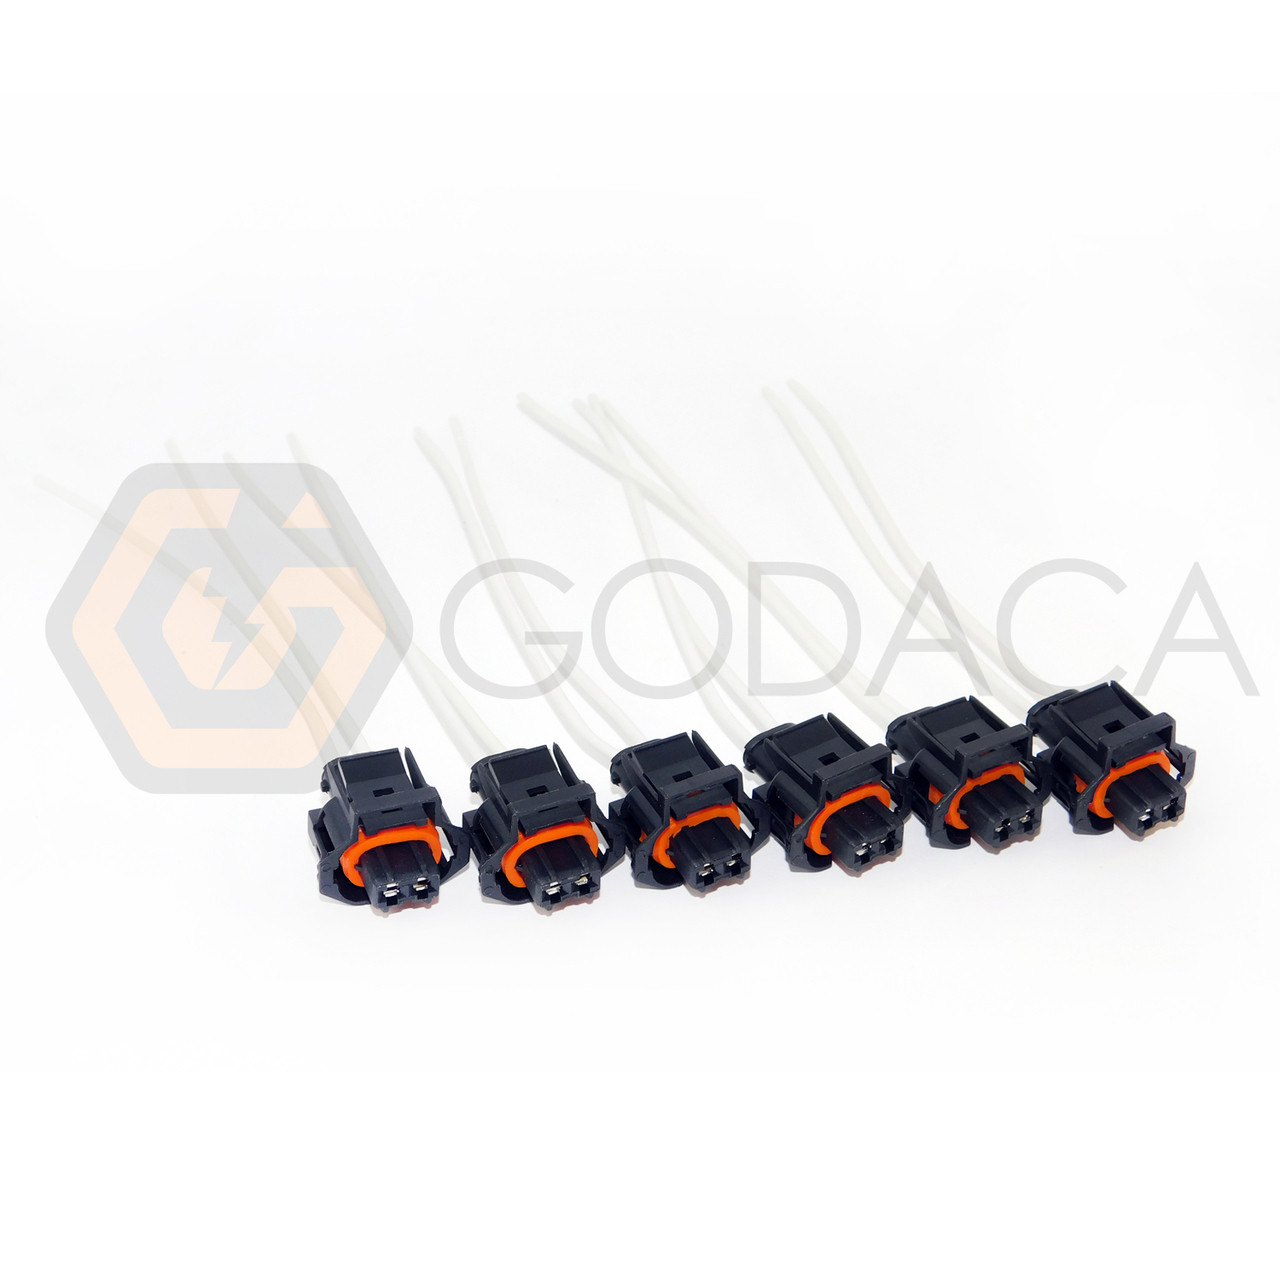 set of 6 fuel injector connector 6 6l for duramax lly lbz 2 wire rh godaca com Wiring Harness Plugs Pigtail Auto Wiring Harness Connector Plugs